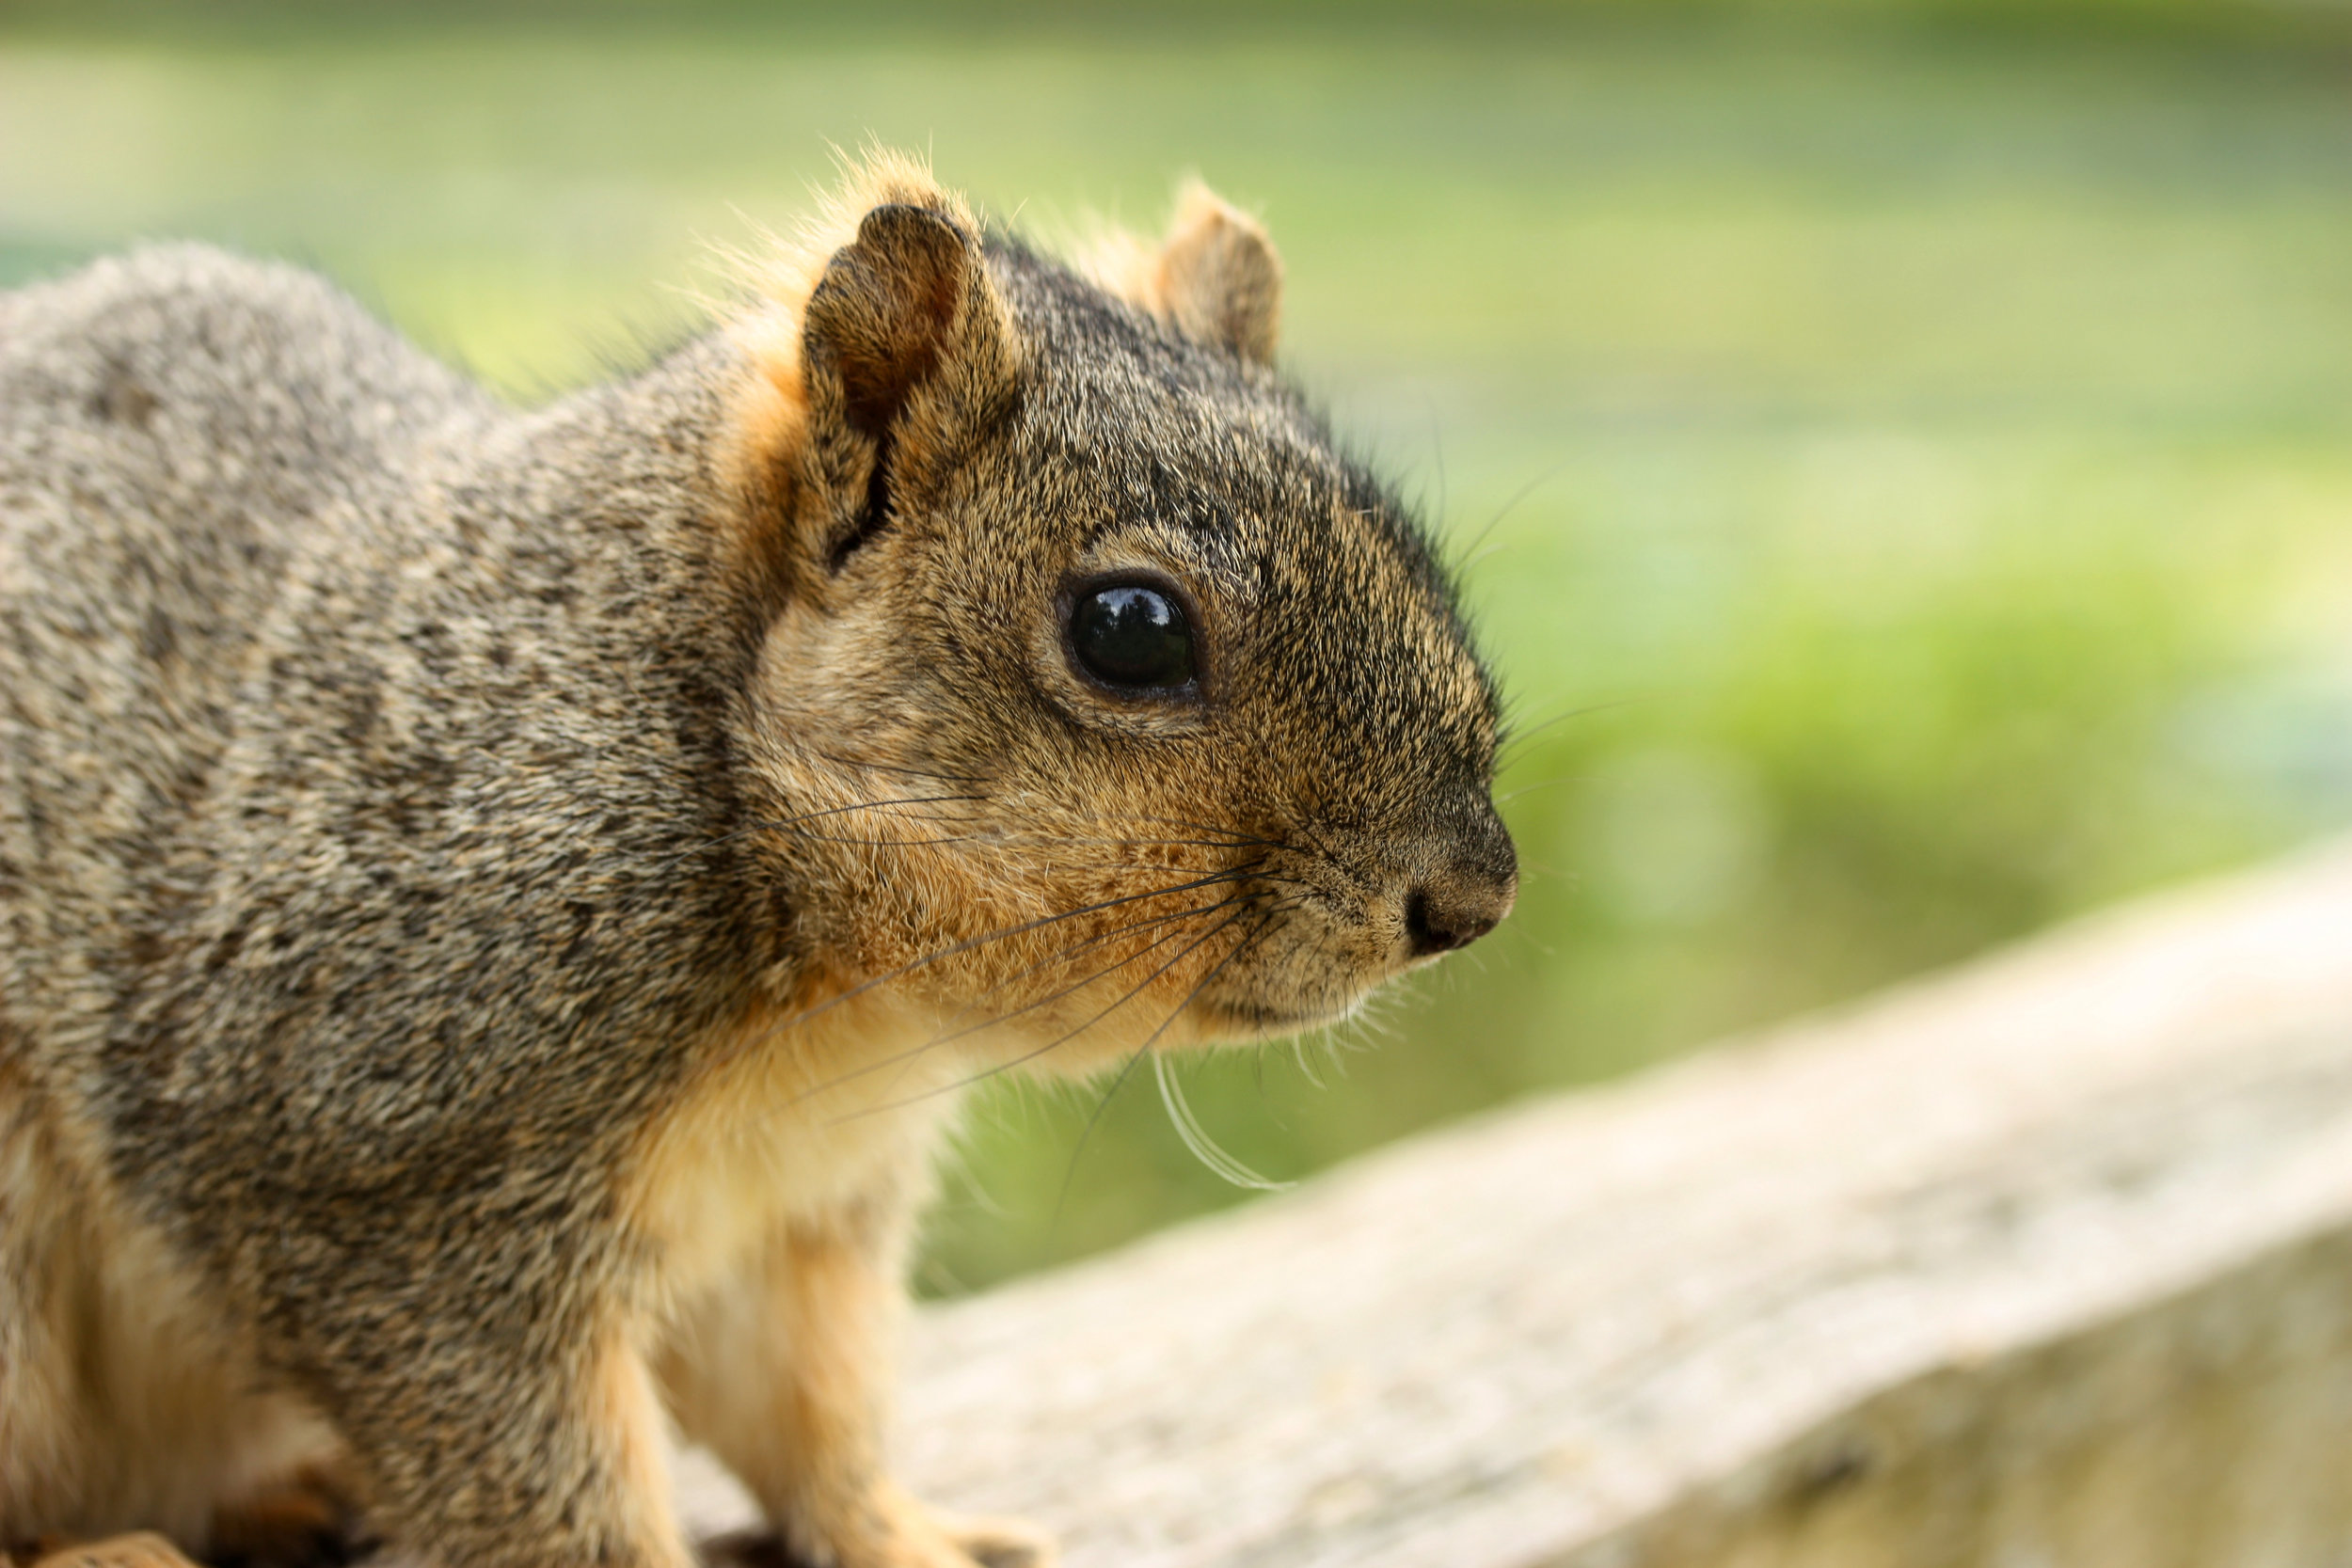 - Portland is experiencing an increase in squirrel and rat populations. We've gotten some calls from clients panicked about rodent intruders. While this is a distressing problem, it is also fixable and best handled with swift action. Here is some information to help you get started.Learn how to get squirrels out of your attic>>